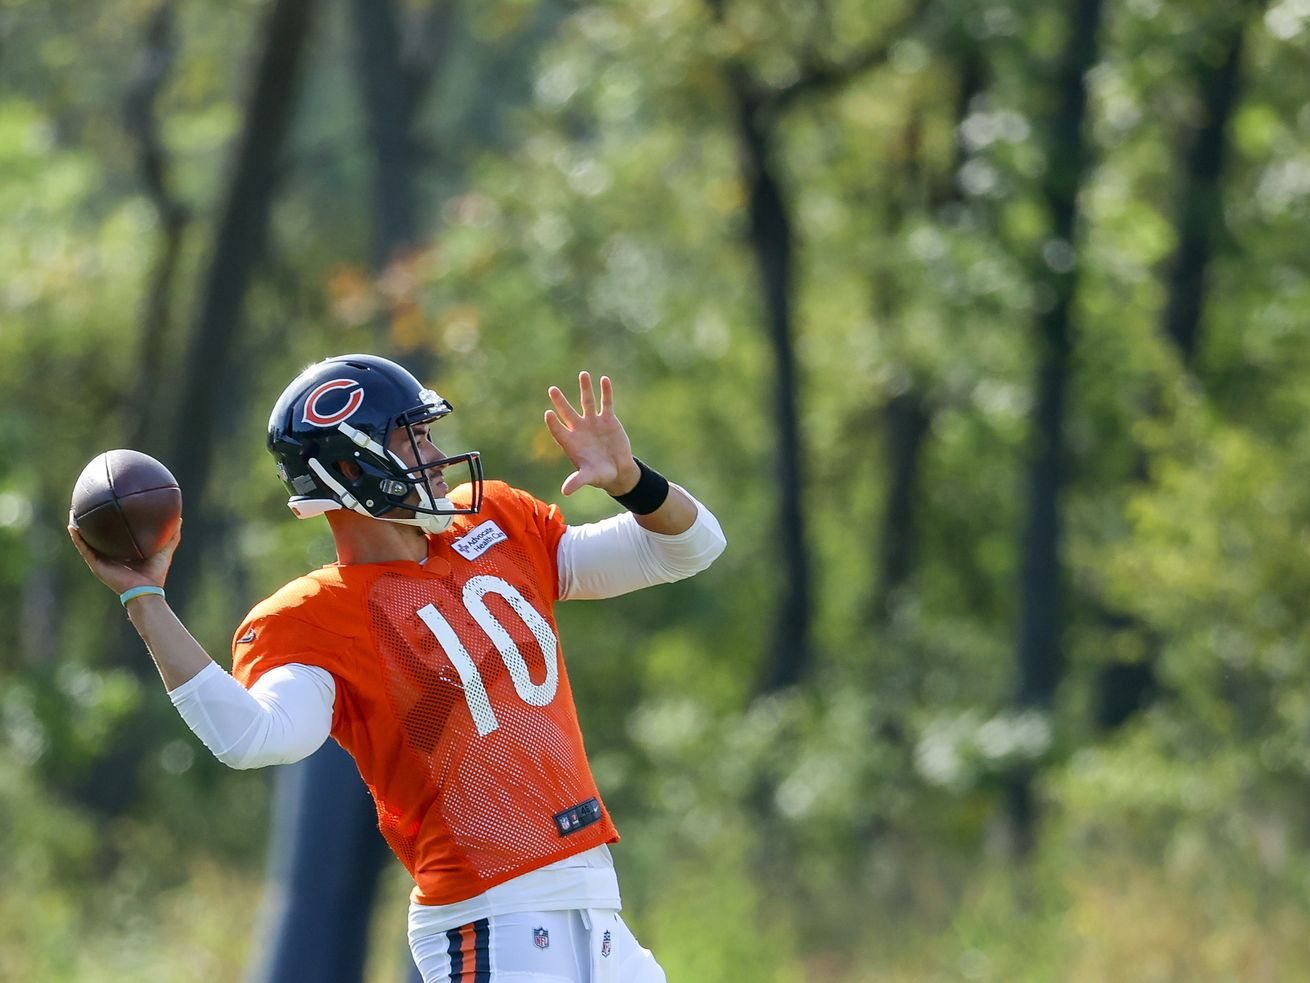 From hype to hope: Bears GM Ryan Pace affirms his belief in Mitch Trubisky